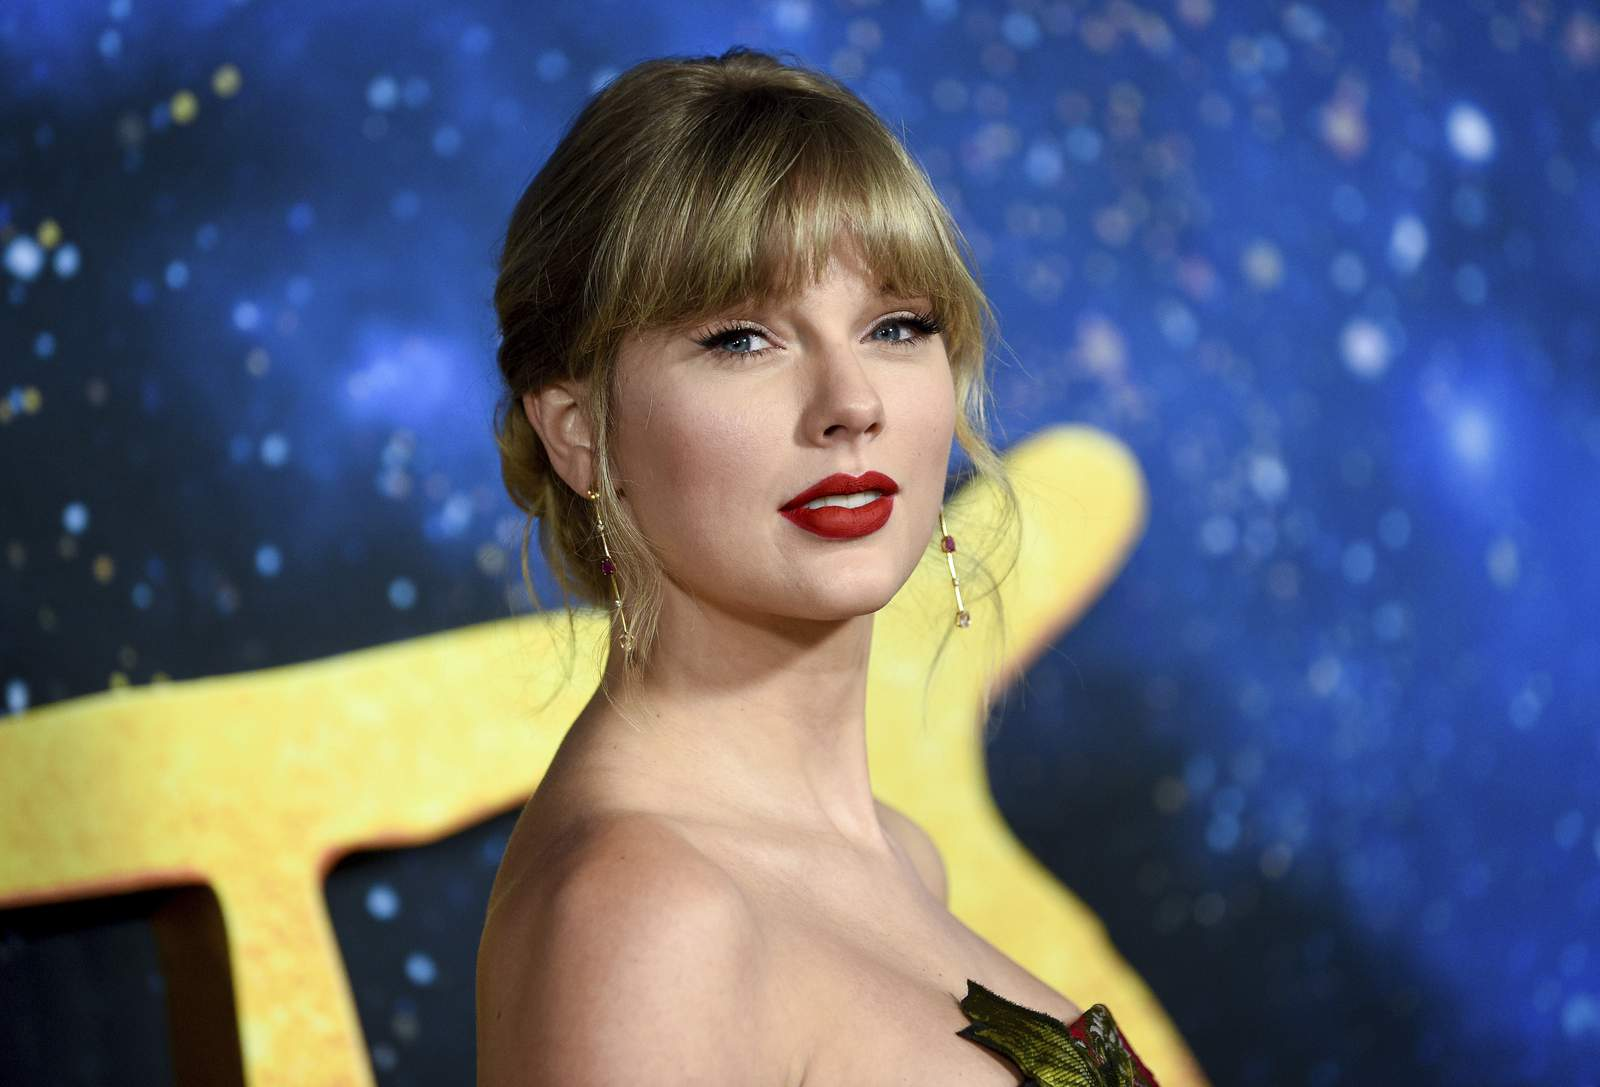 Taylor Swift donates $30,000 to 18-year-old girl to pay her college fee